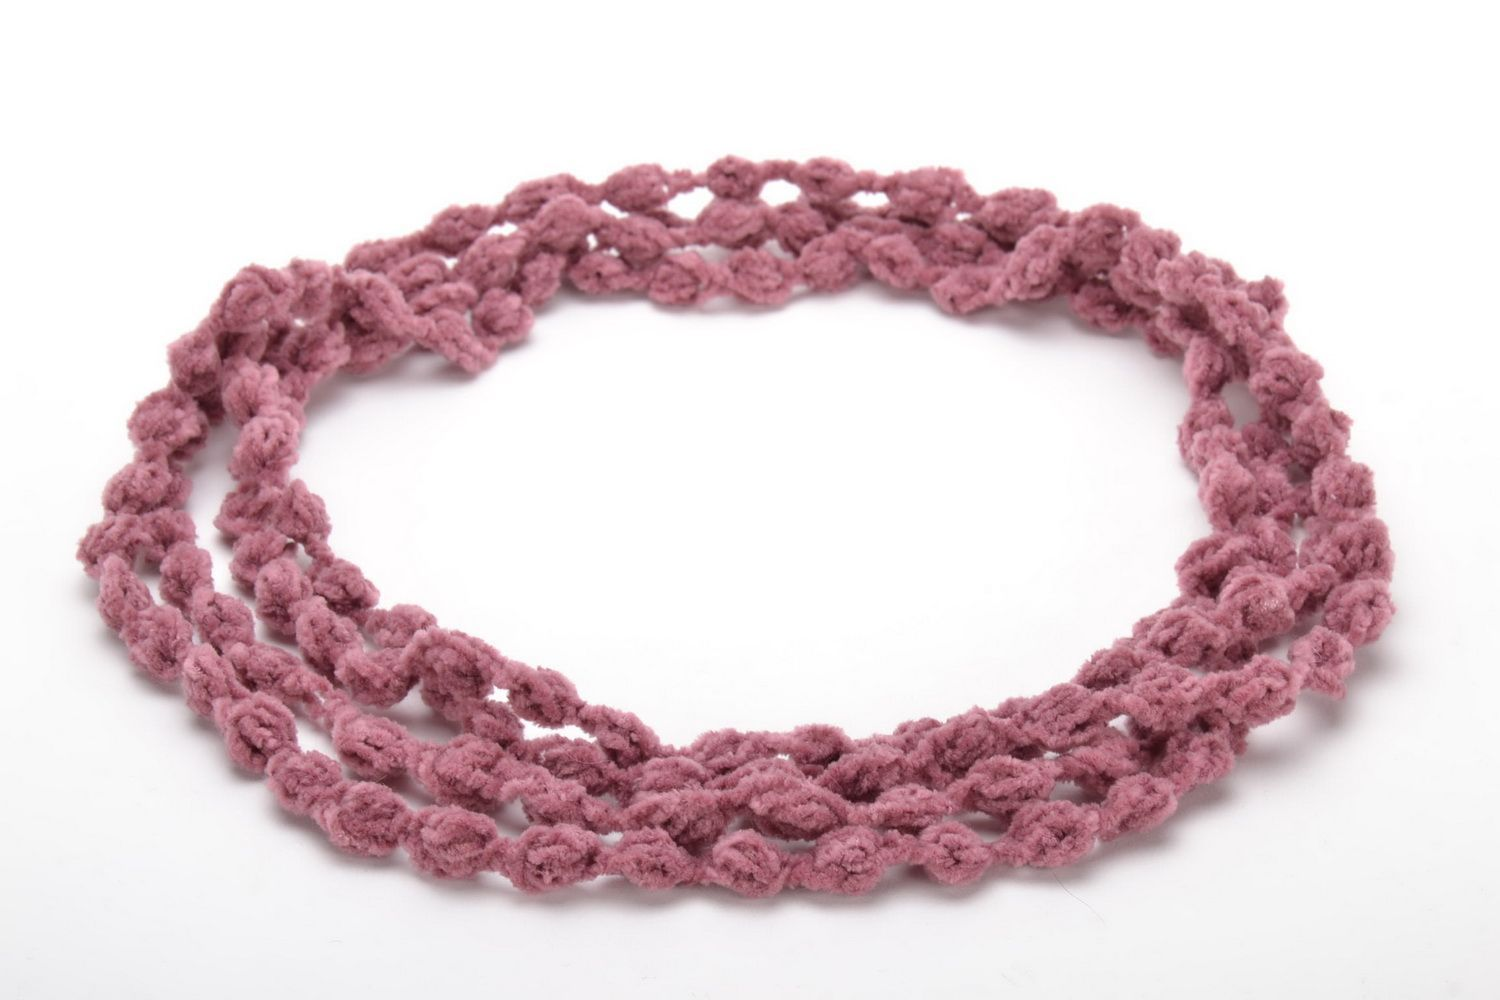 Crochet multi-row necklace photo 3